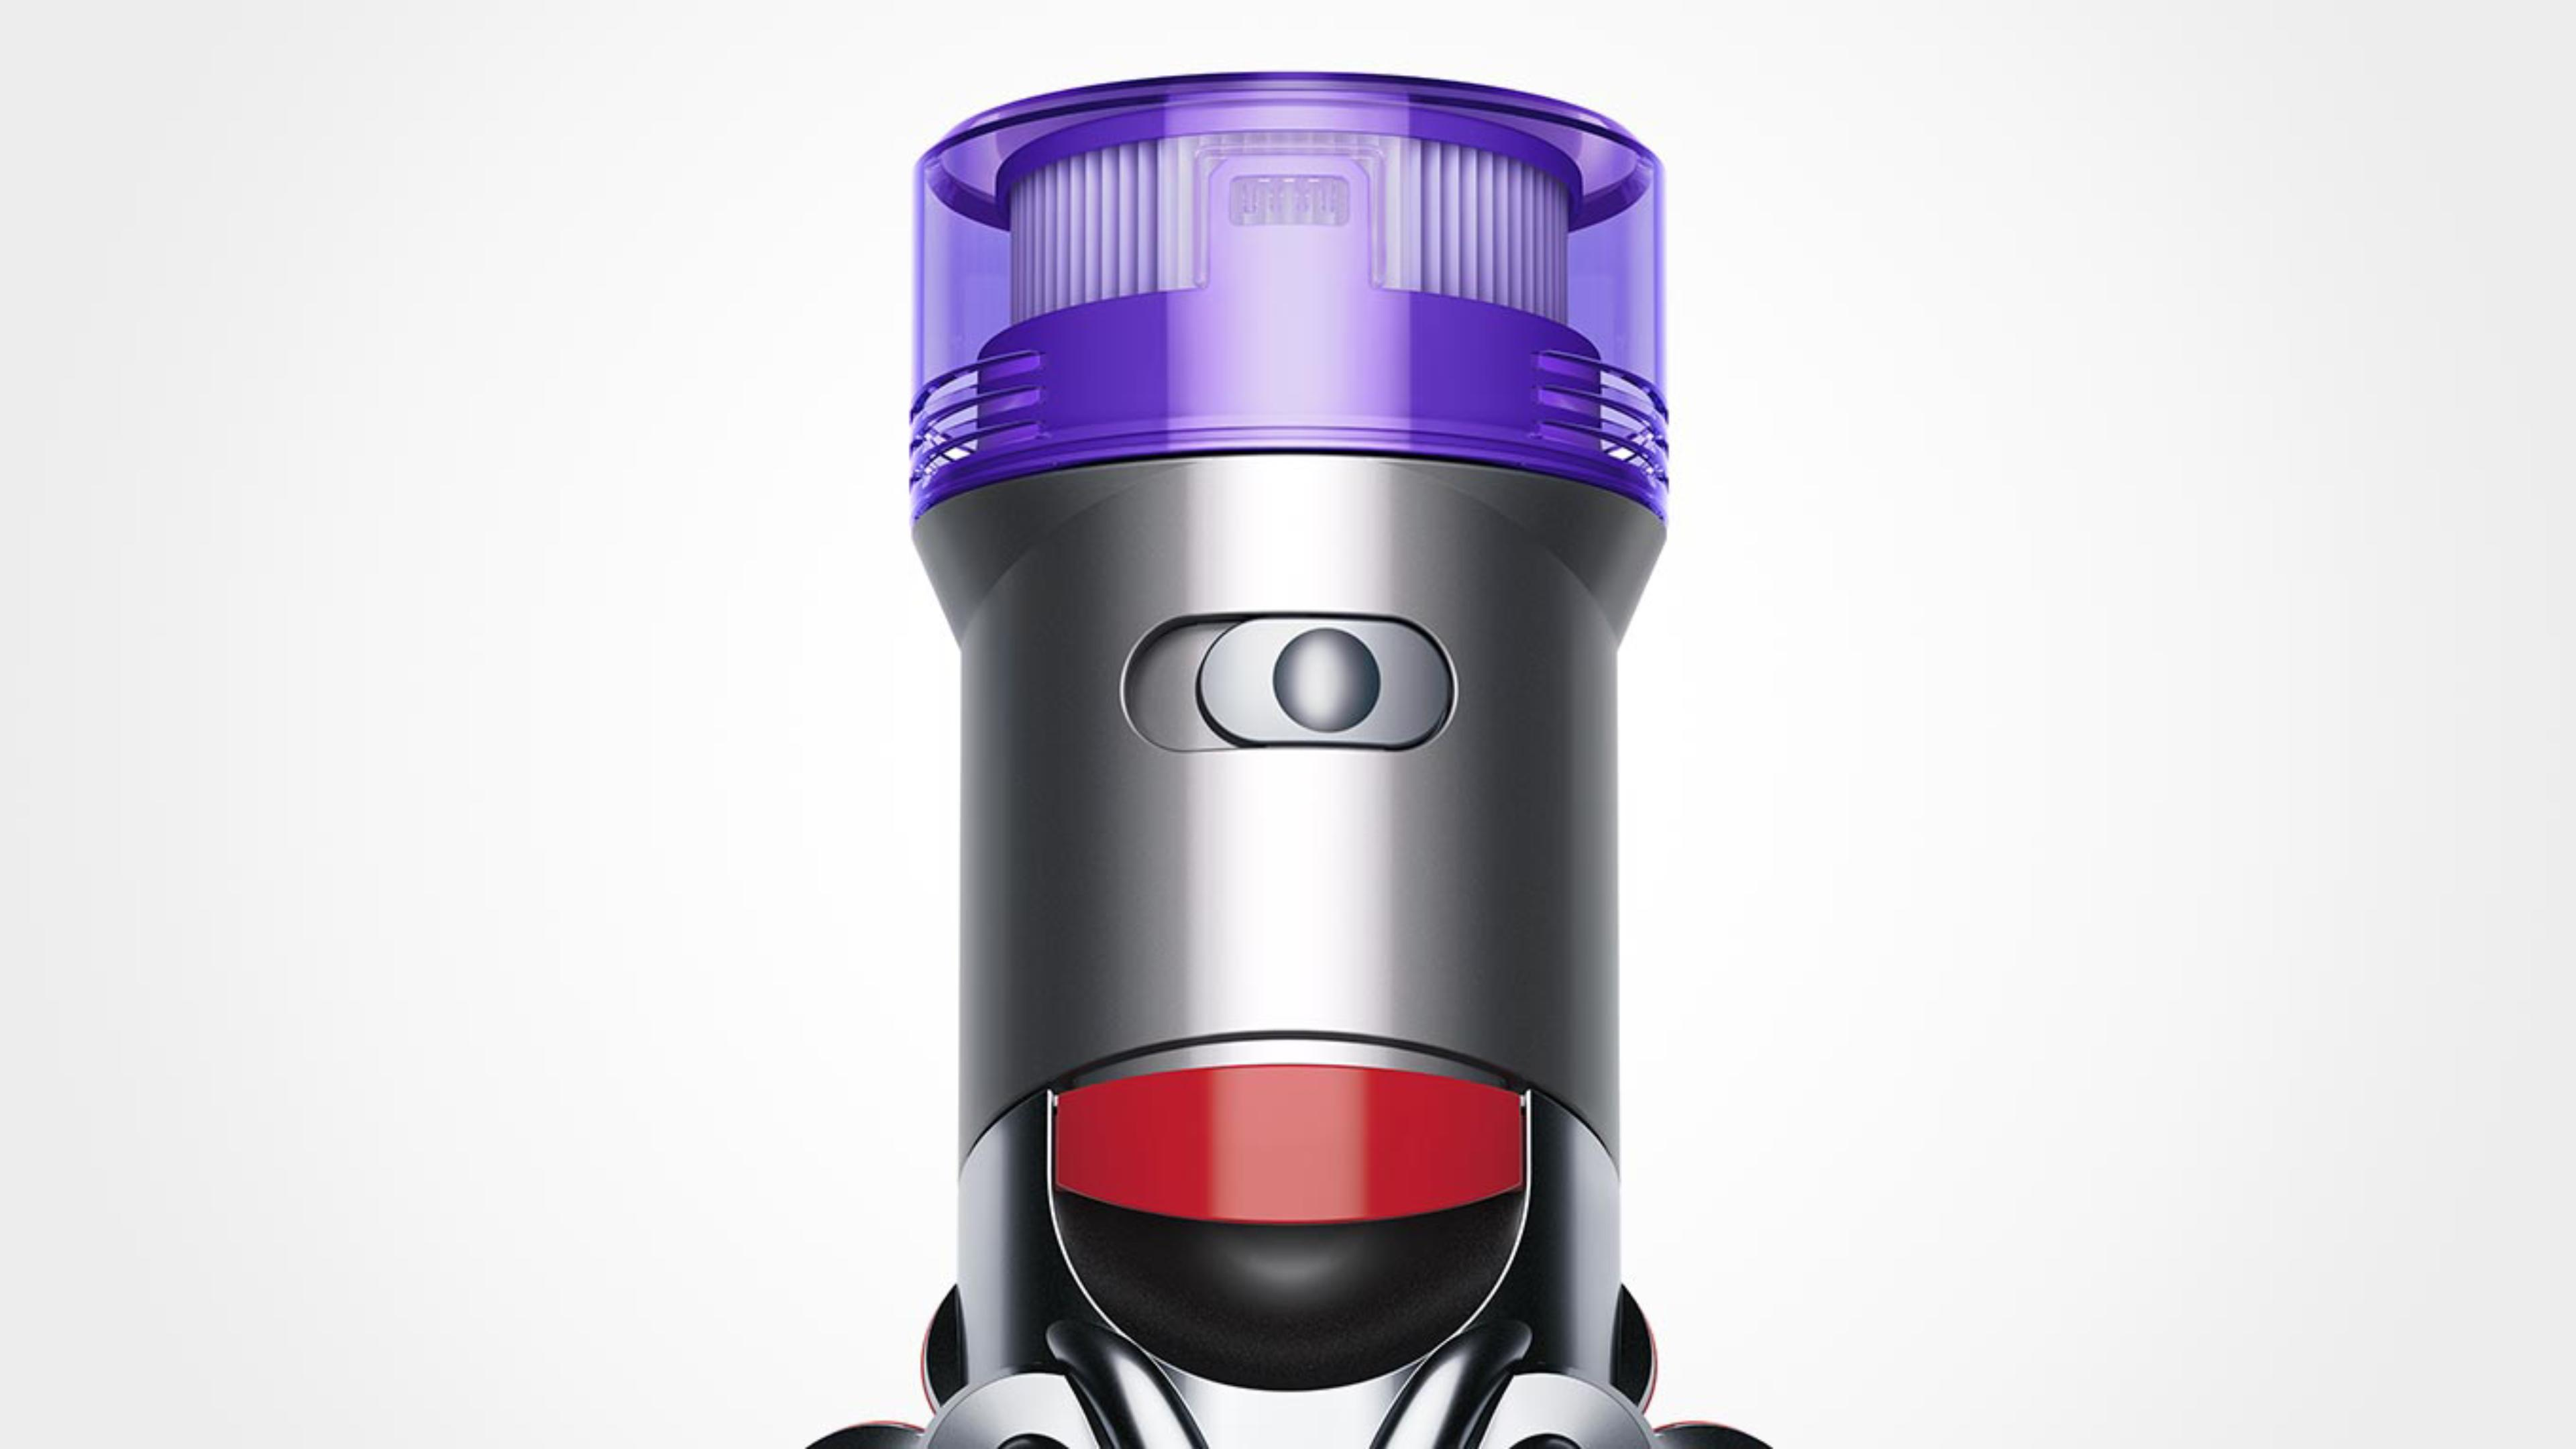 The Dyson V8™ vacuum's power mode switch